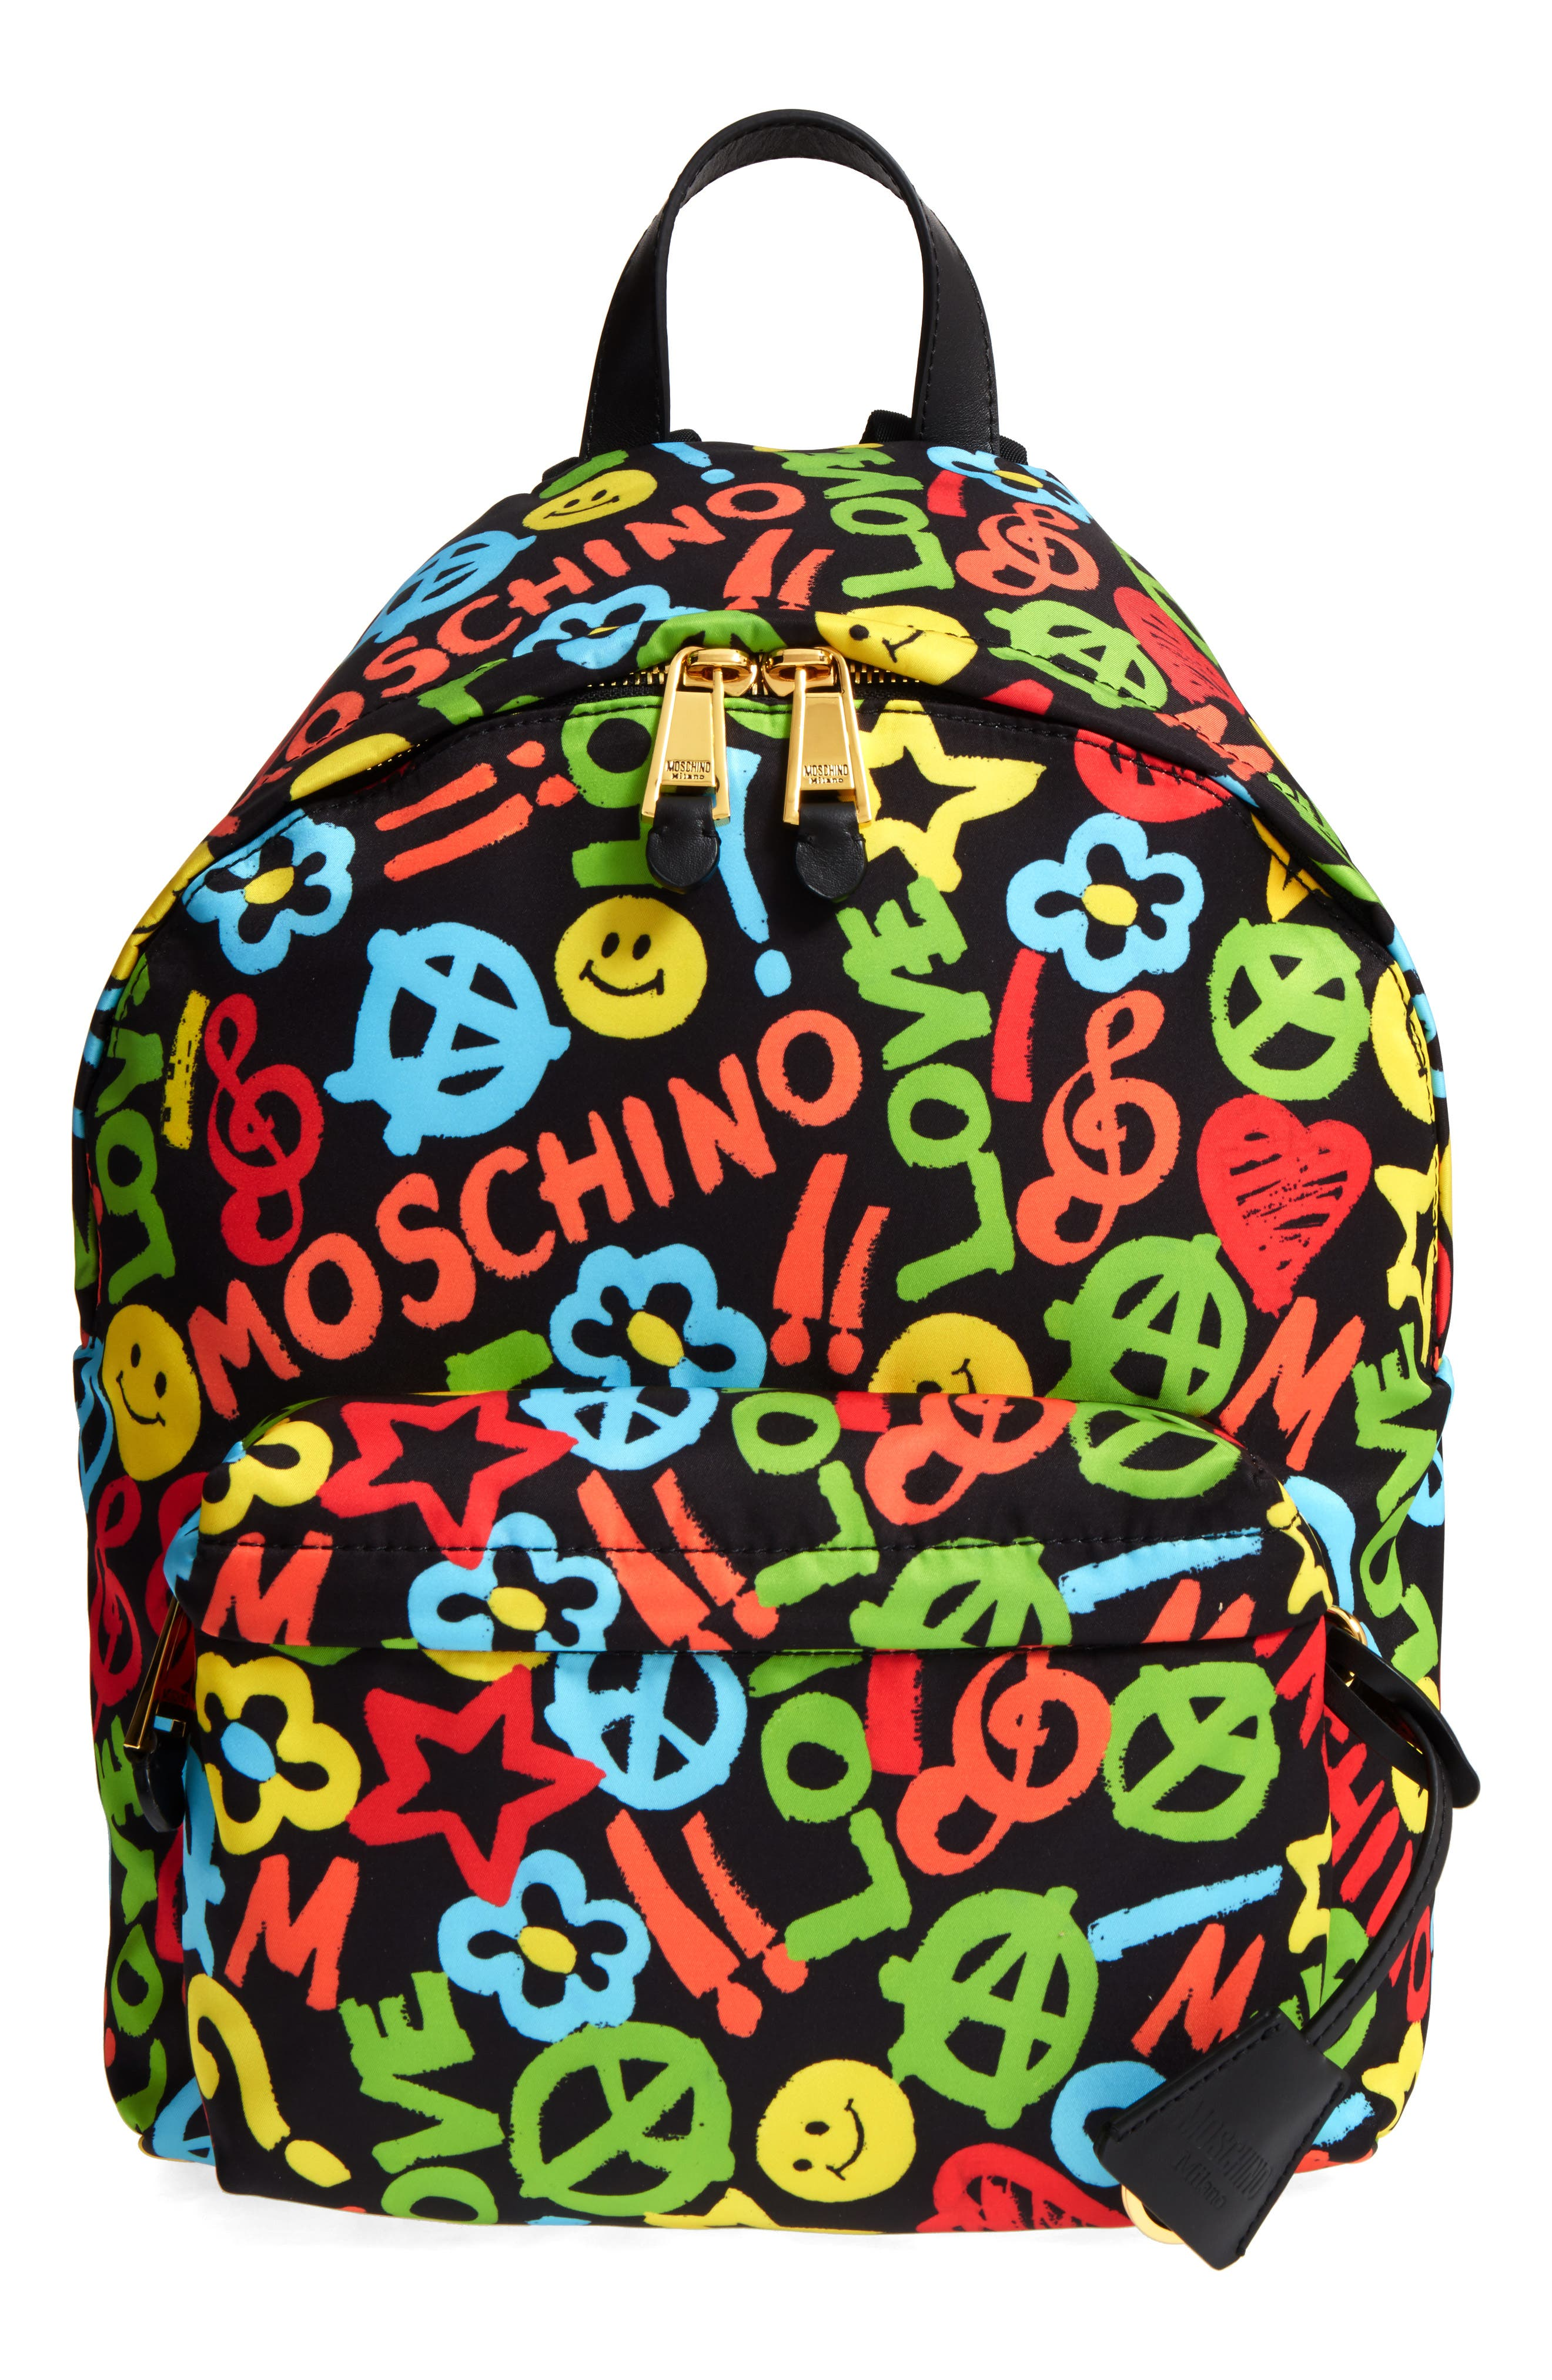 Moschino Archive Print Tactel® Nylon Backpack